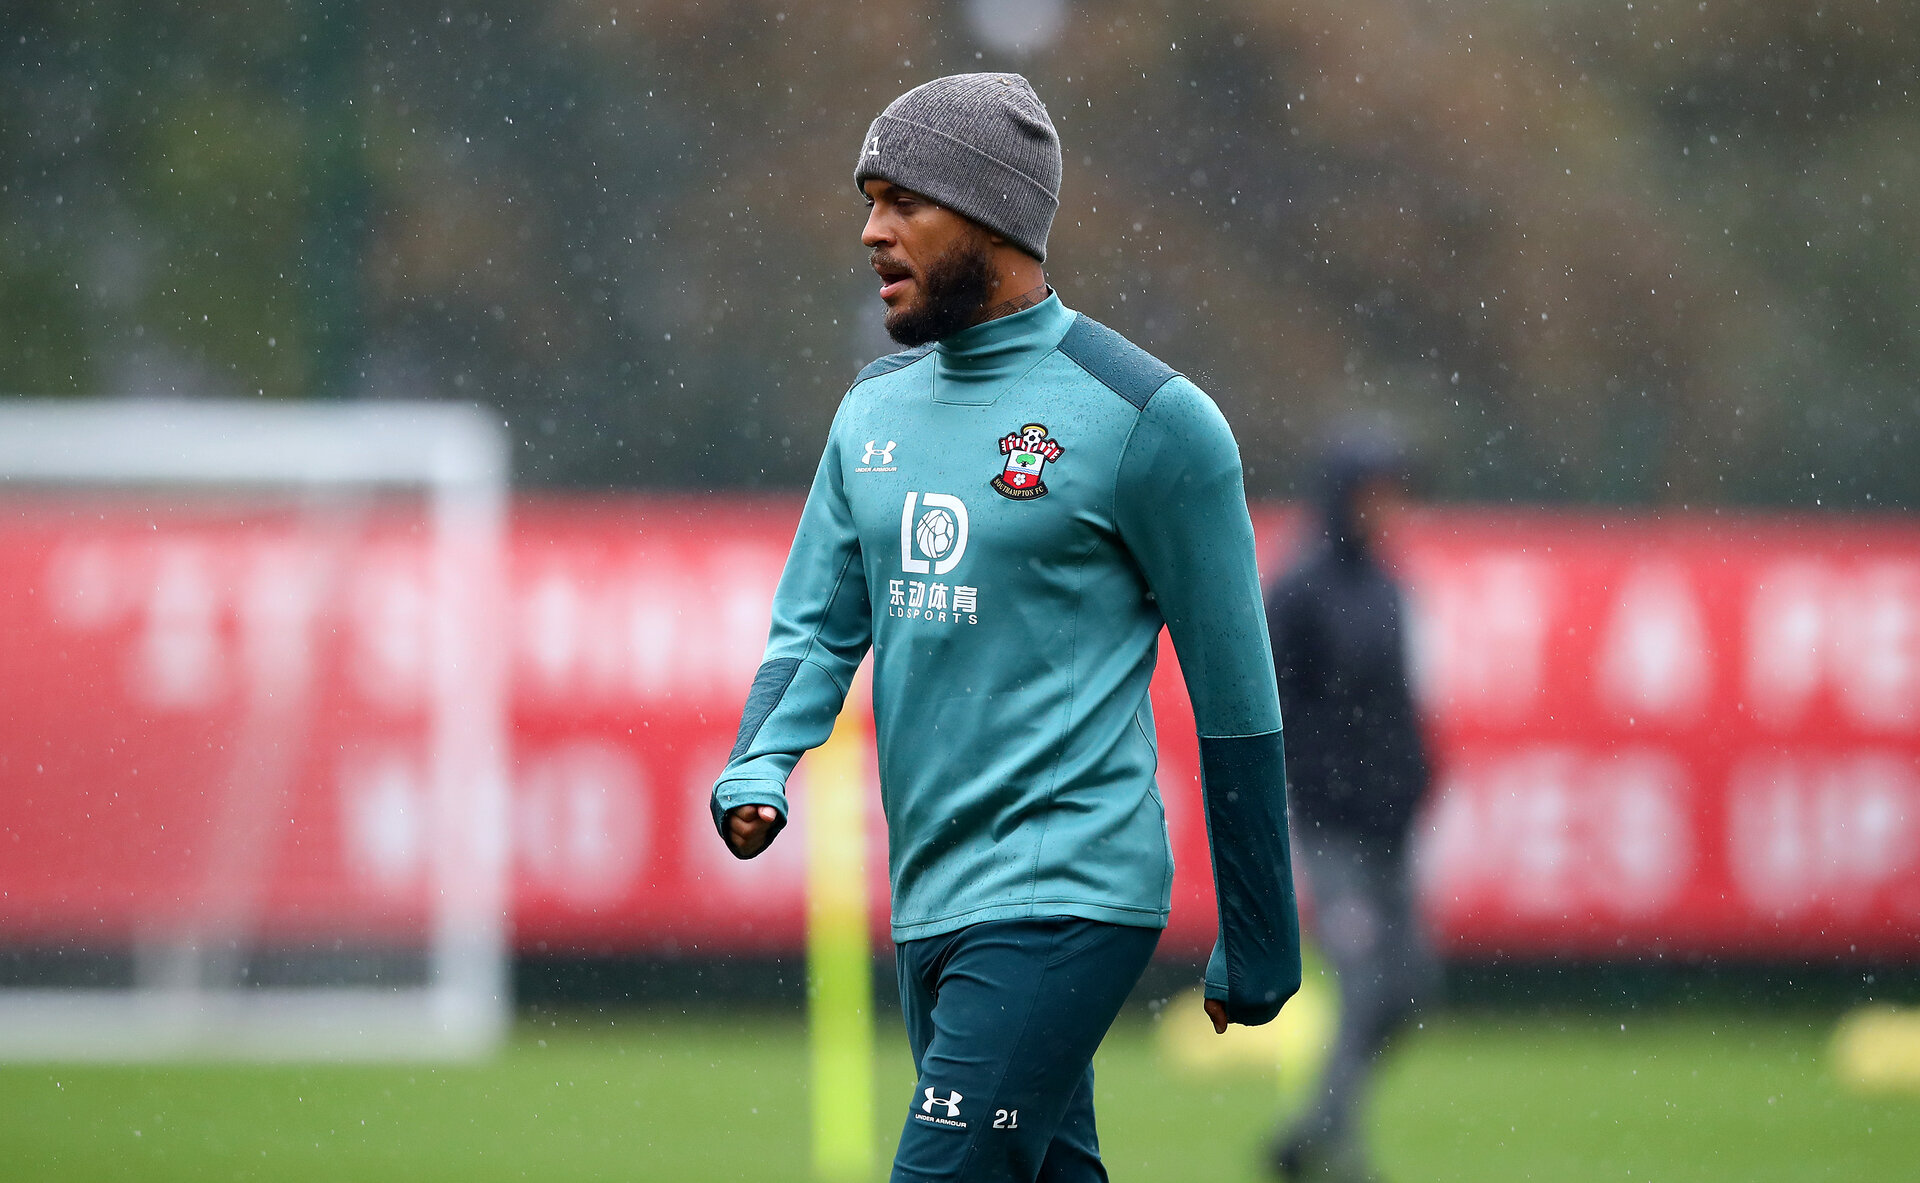 SOUTHAMPTON, ENGLAND - OCTOBER 24: Ryan Bertrand during a Southampton FC training session at the Staplewood Campus on October 24, 2019 in Southampton, England. (Photo by Matt Watson/Southampton FC via Getty Images)